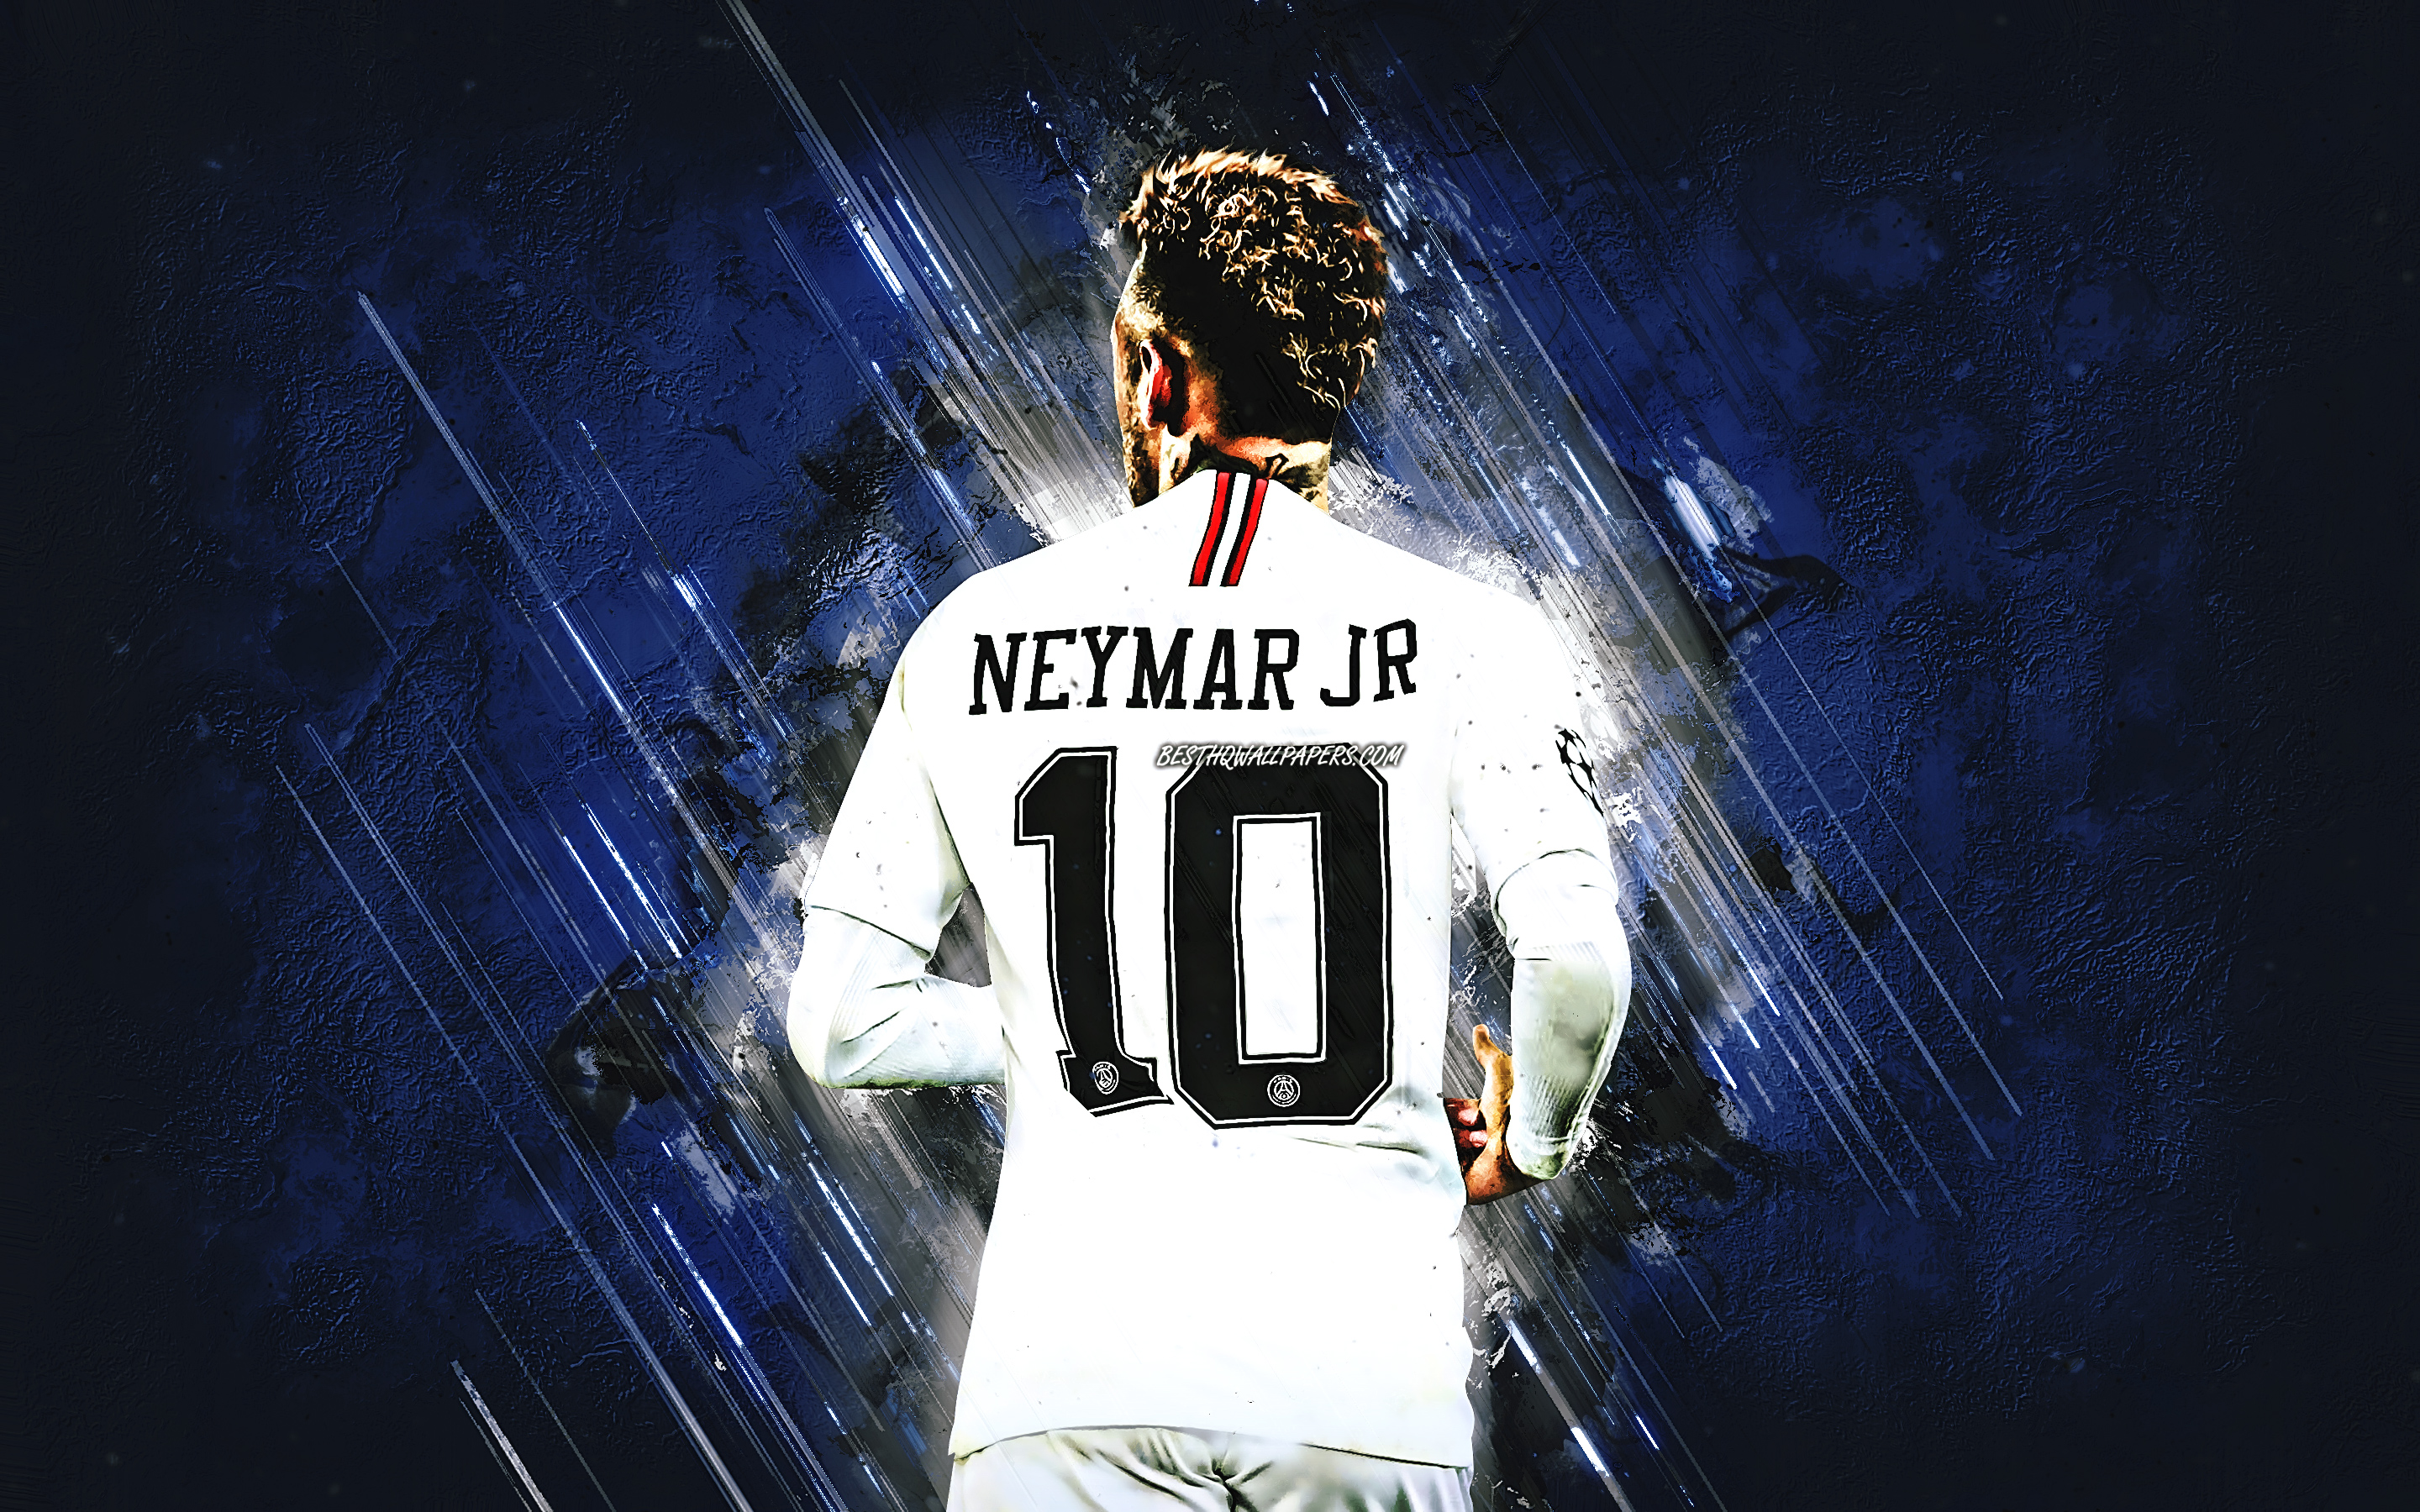 Neymar JR, blue stone, back view, PSG, brazilian footballers, Ligue 1, Paris Saint-Germain, football stars, grunge, Neymar, soccer, Neymar PSG, France